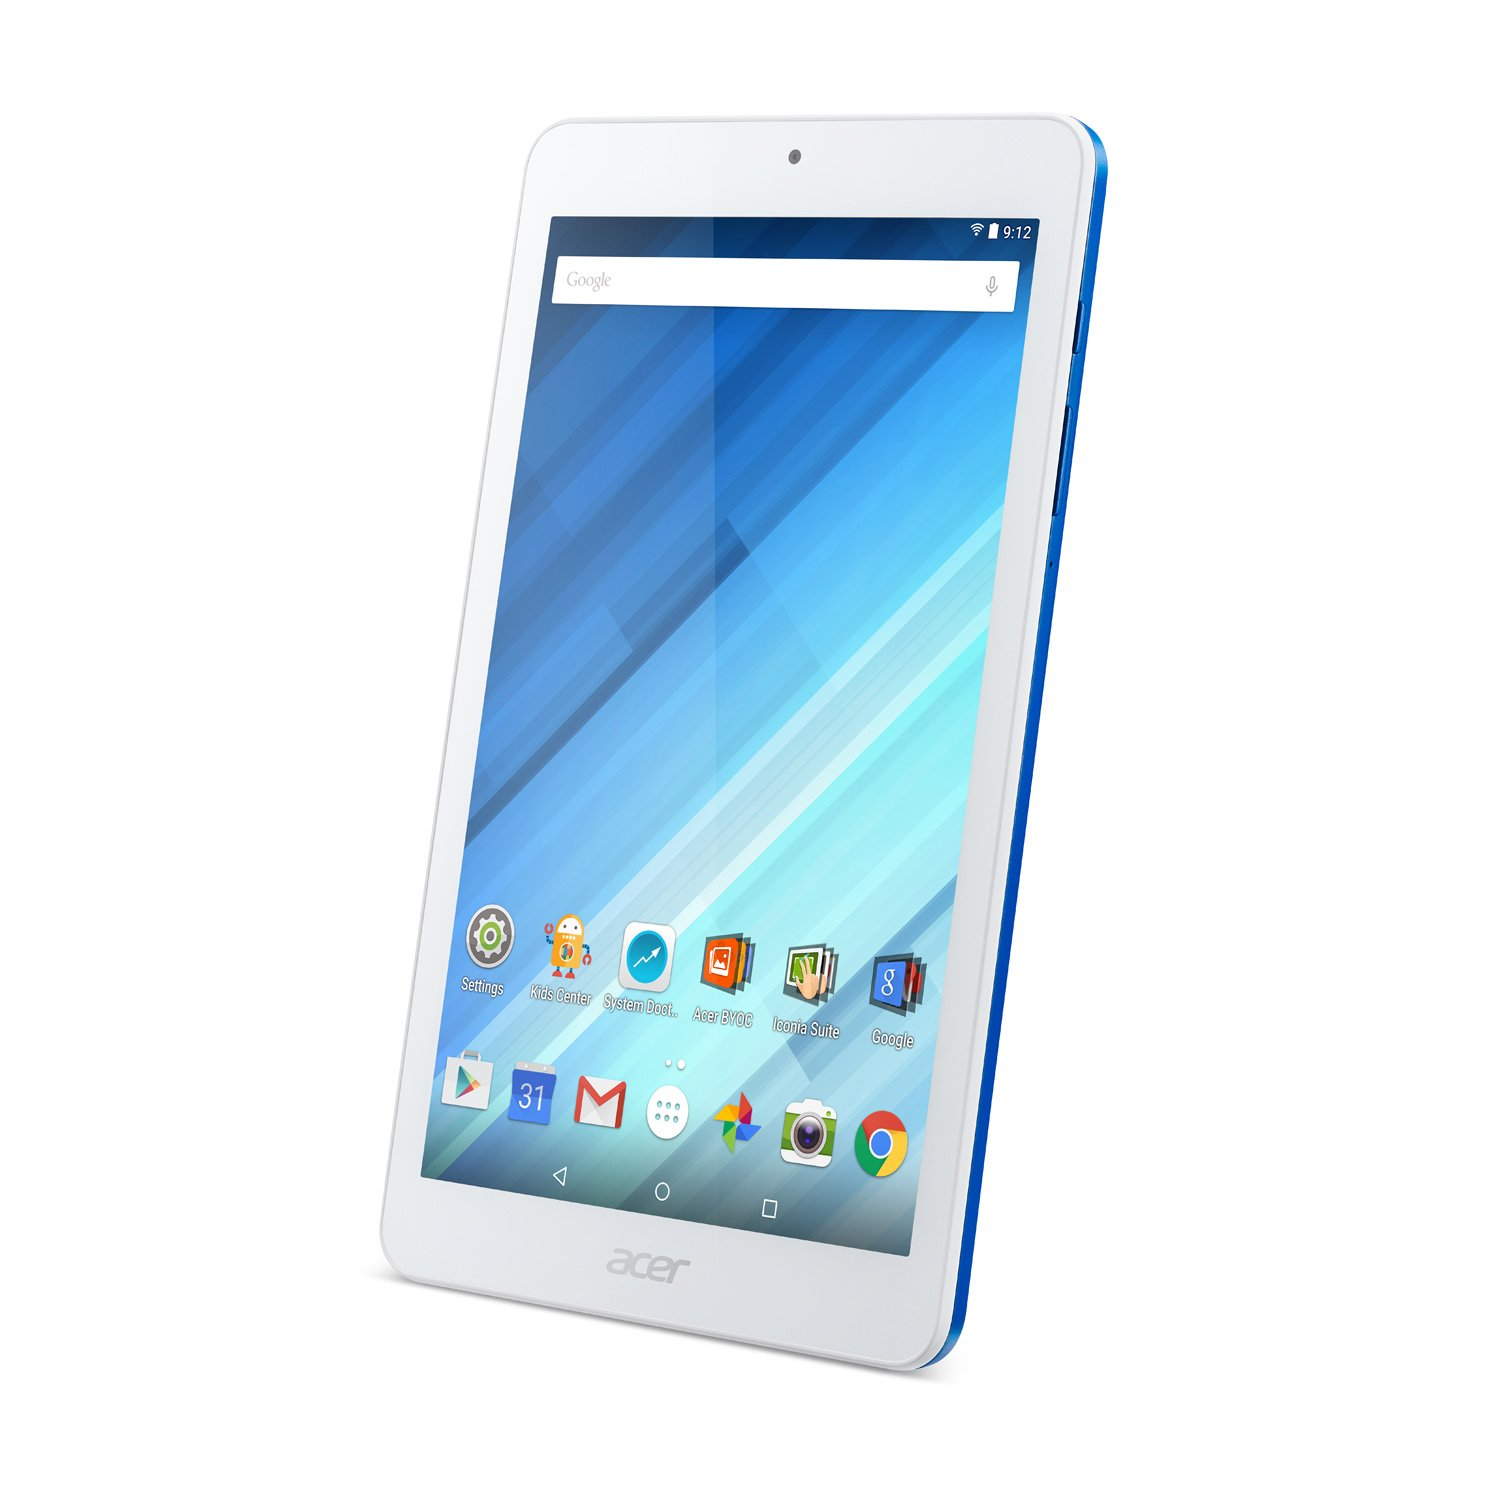 Acer NT.LC4AA.001;B1-850-K1KK Iconia MT8163 1.3GHz 1GB 16GB Abgn BT 2Xwc 8'' WXGA MT Android 5.1 Tablet, Blue by Acer